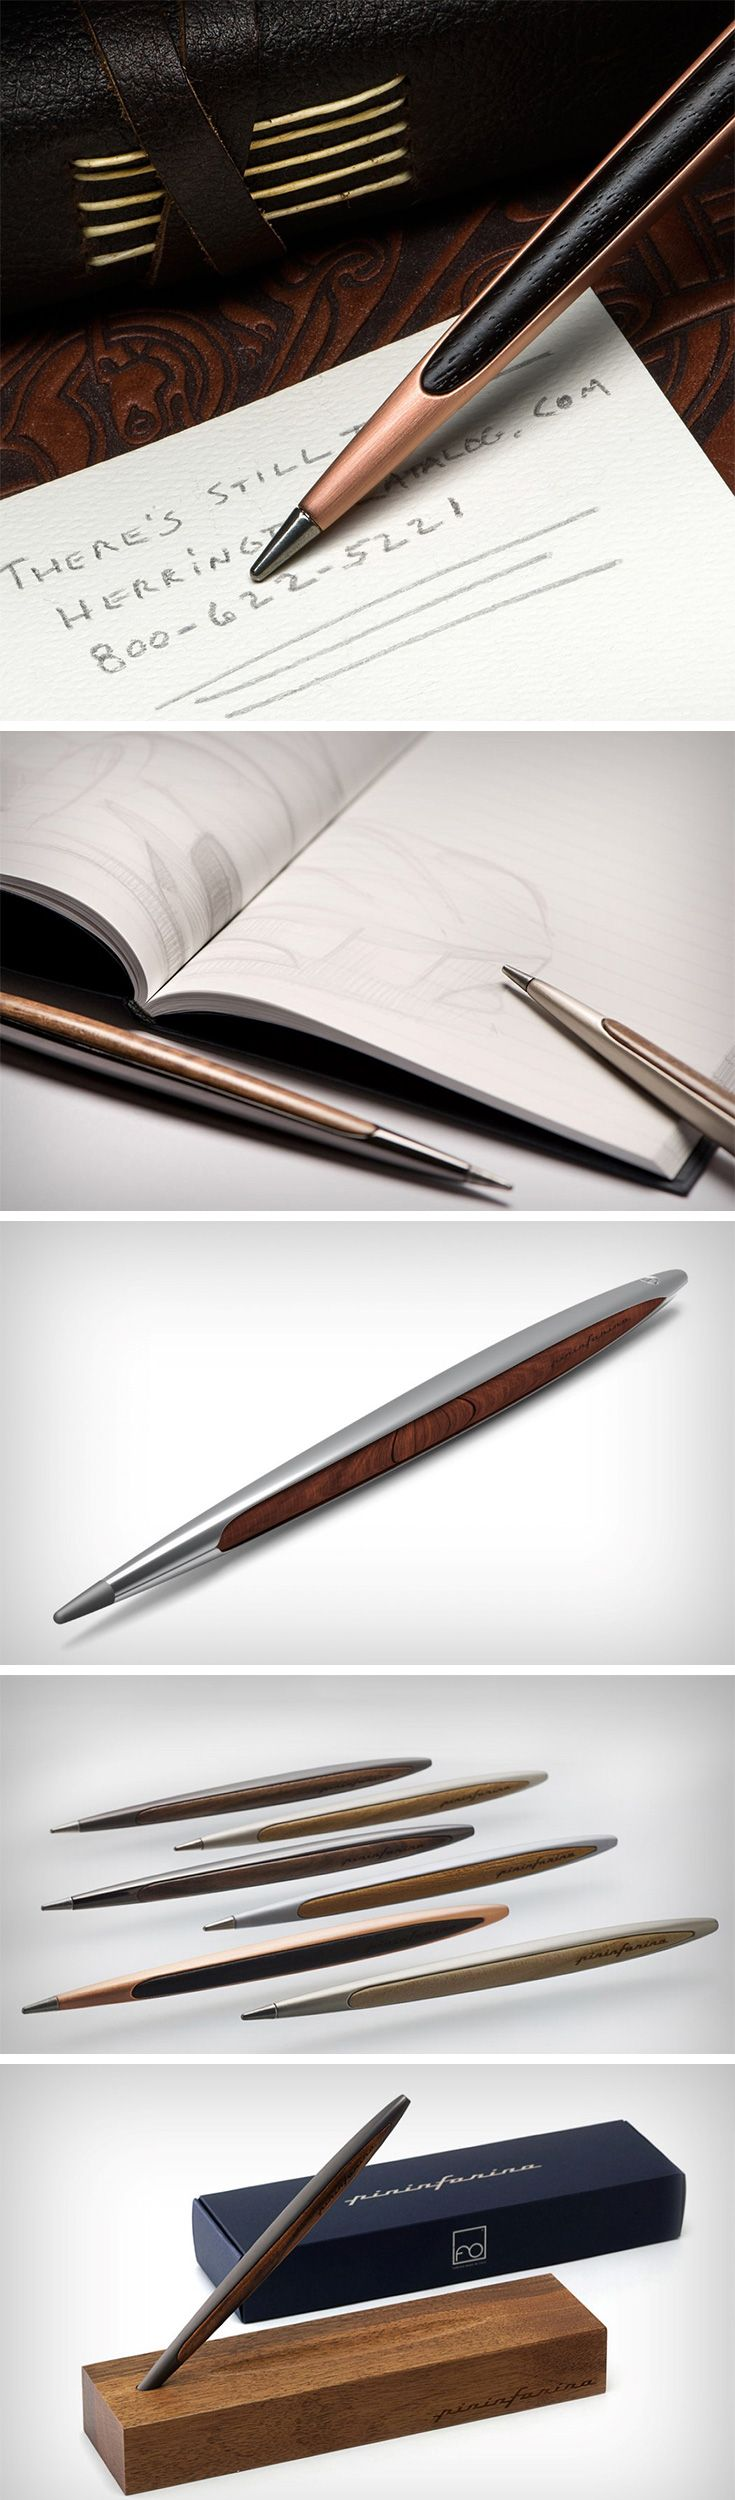 This pen is literally timeless. In the sense that it will run forever, that too without a single drop of ink. Coming from the one company that knows timeless design best, Italy's Pininfarina, the Pininfarina Cambiano pen is a beautiful, sleek writing tool that uses innovative design and material choice to give you a pen that uses a nib made out of a patented metallic alloy called Ethergraf that can create never-ending lines of graphite on paper.